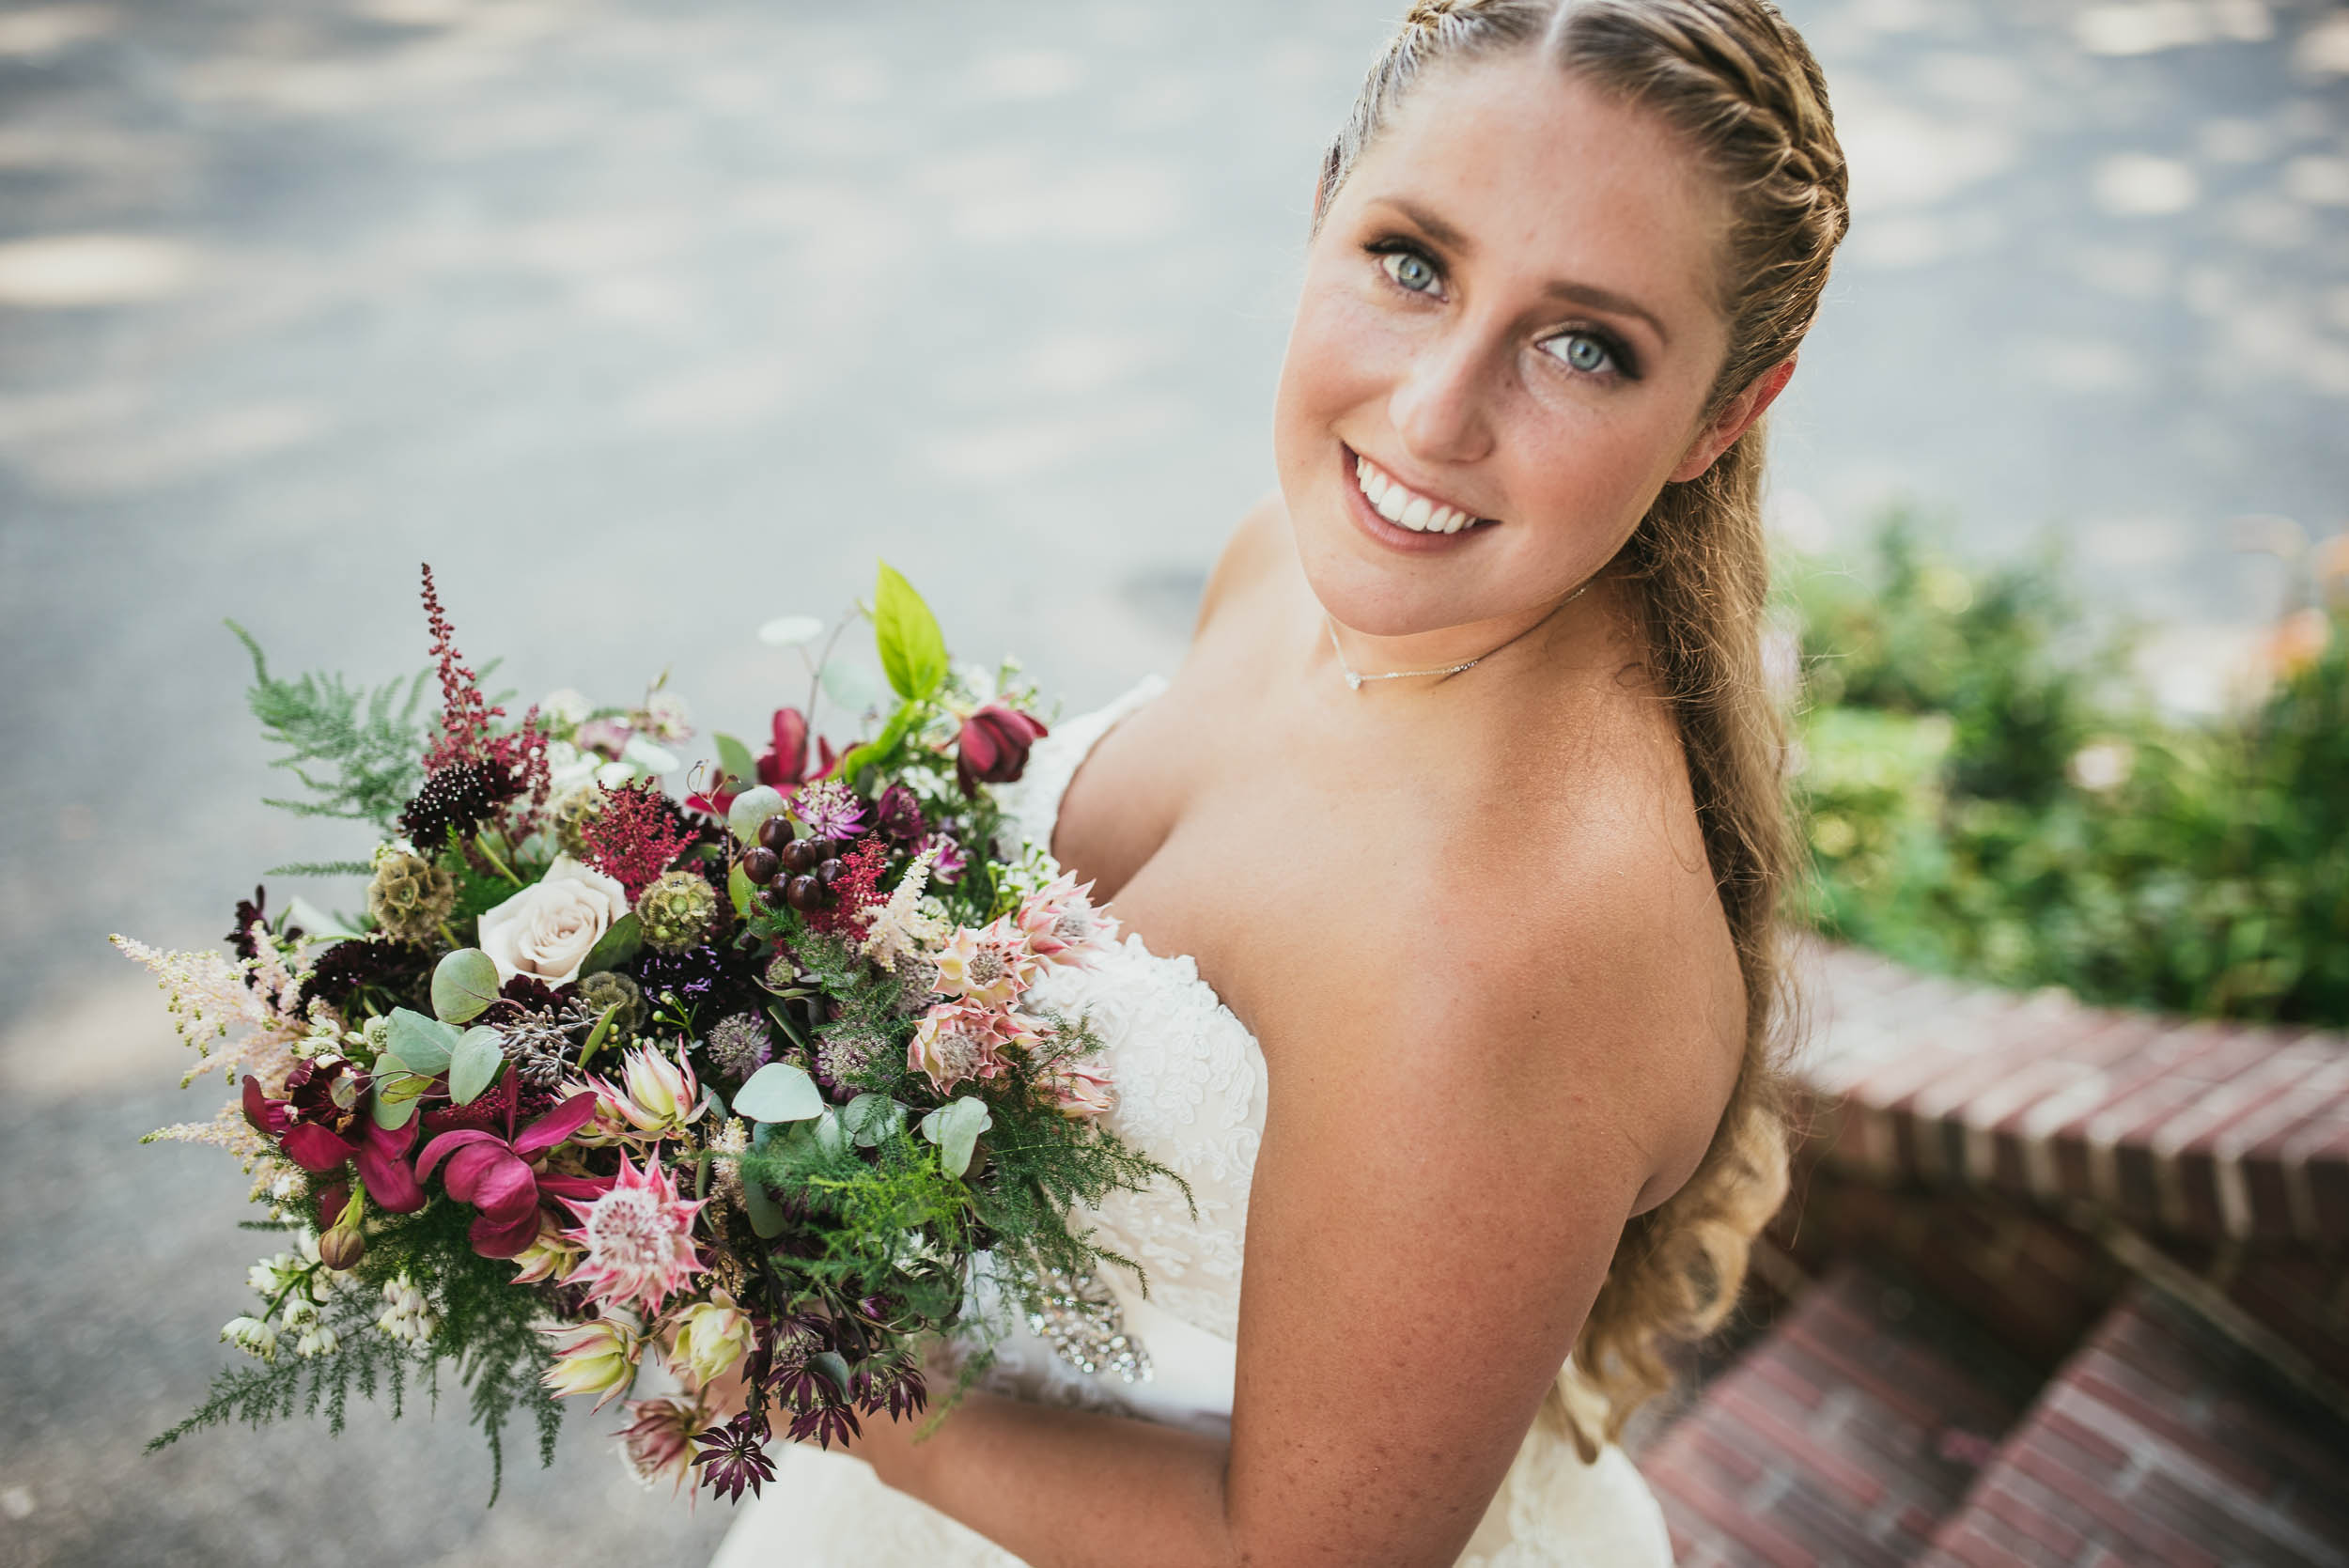 hengstenbergs-florist-kate-andrew-©in-focus-nyc-photography-03.jpg